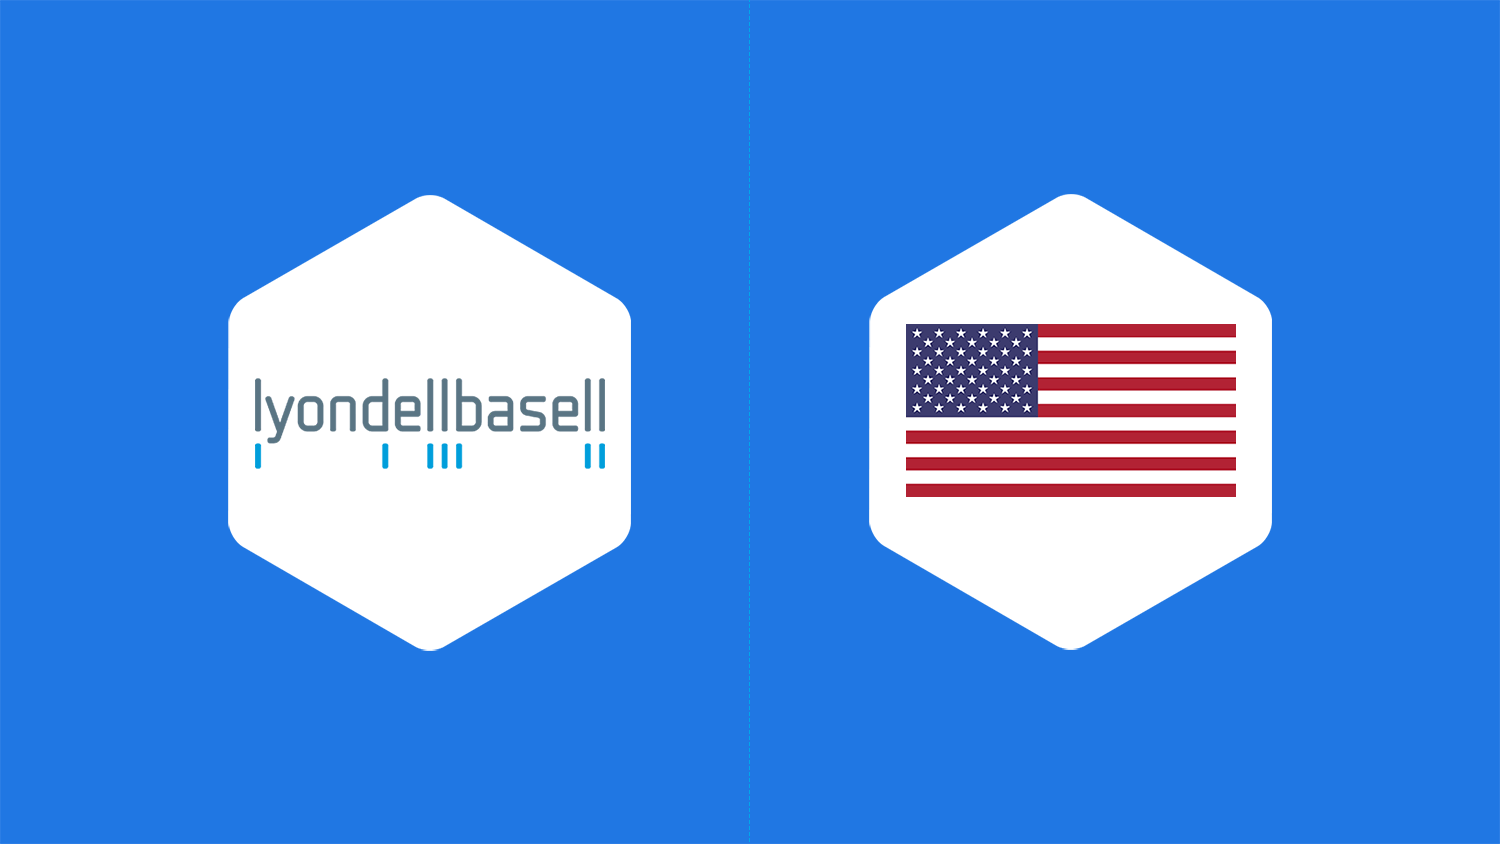 all lyondellbasell industries locations, United States